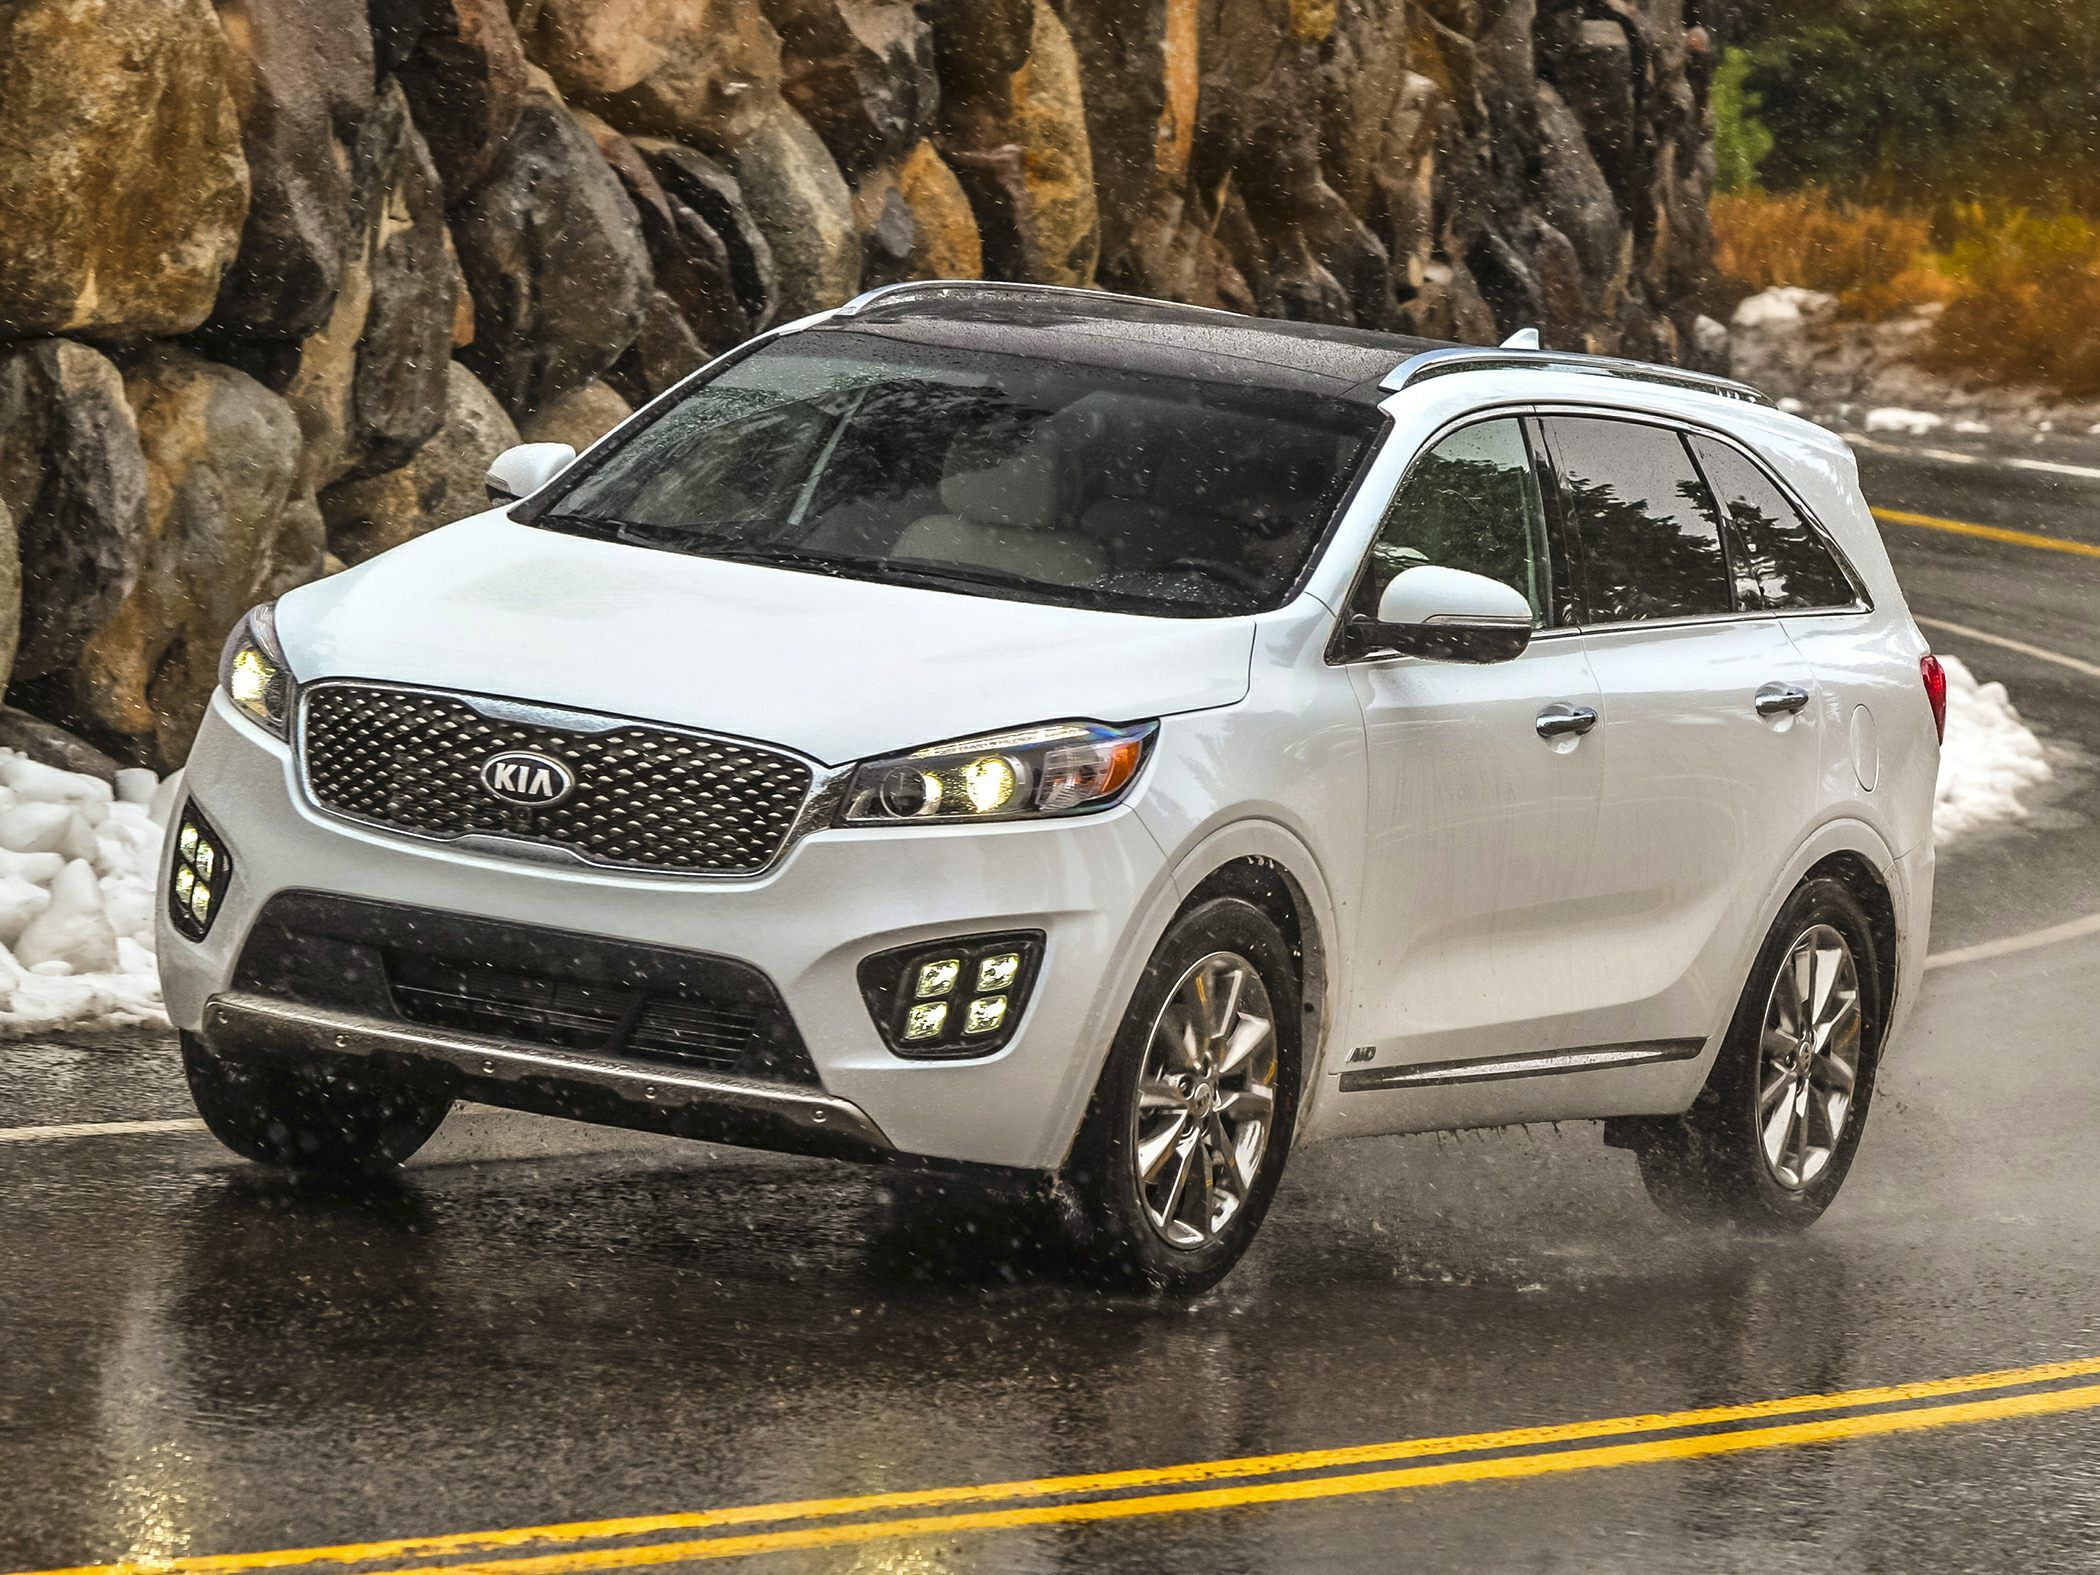 Get the best new 2017 kia sorento deal in your area with the latest pricing incentives financing options and lease info updated by our pricing experts